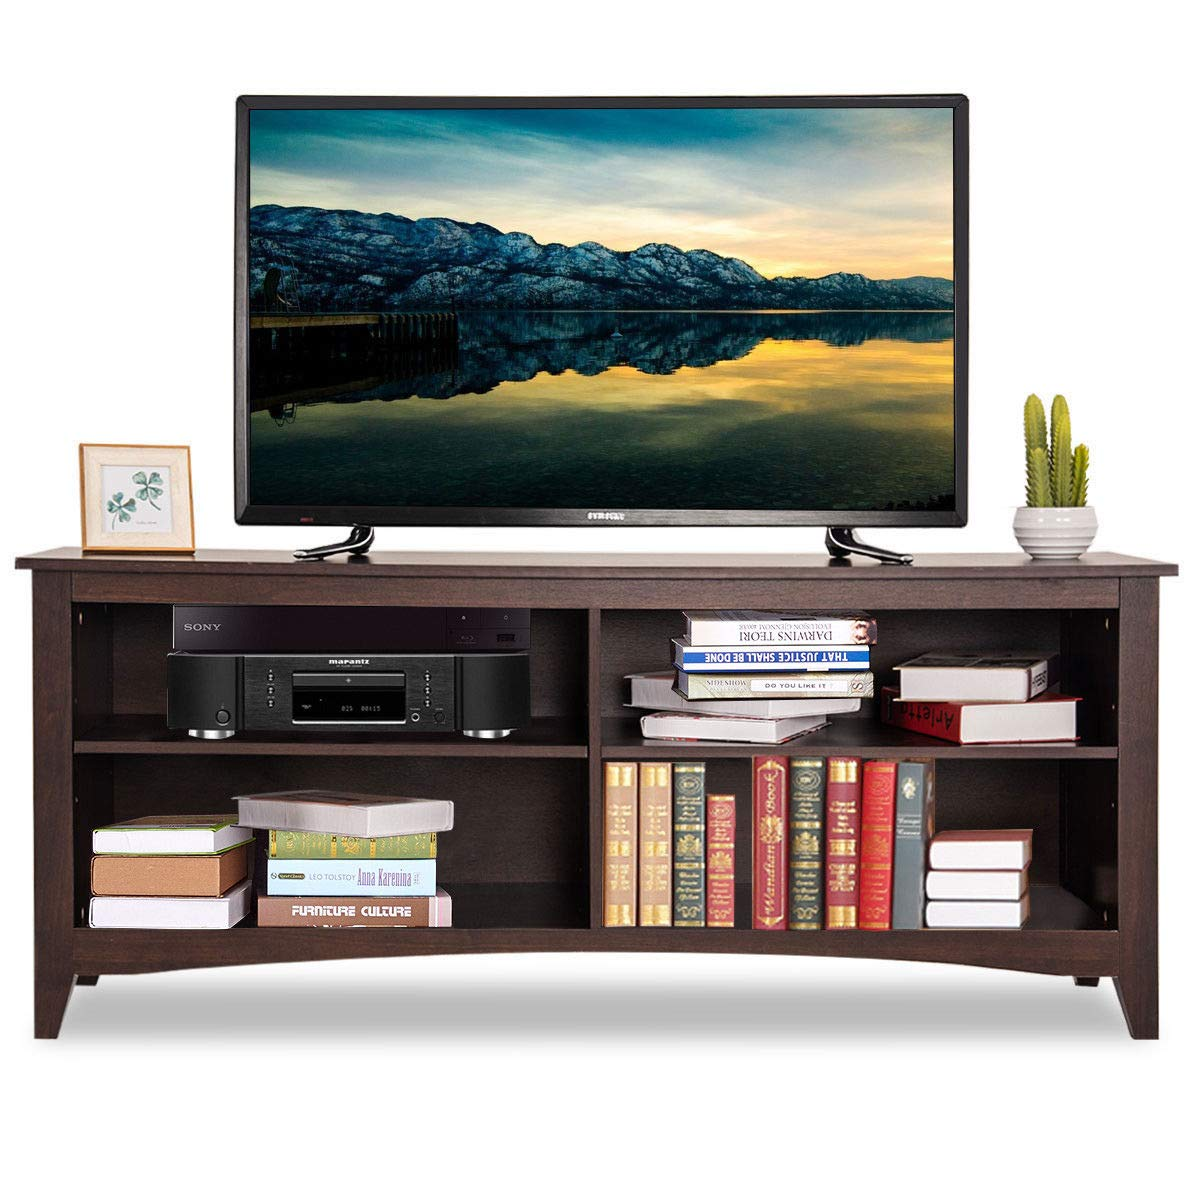 Amazon com tangkula tv stand 58 wood large wide modern storage media console entertainment center with 4 open shelves espresso kitchen dining